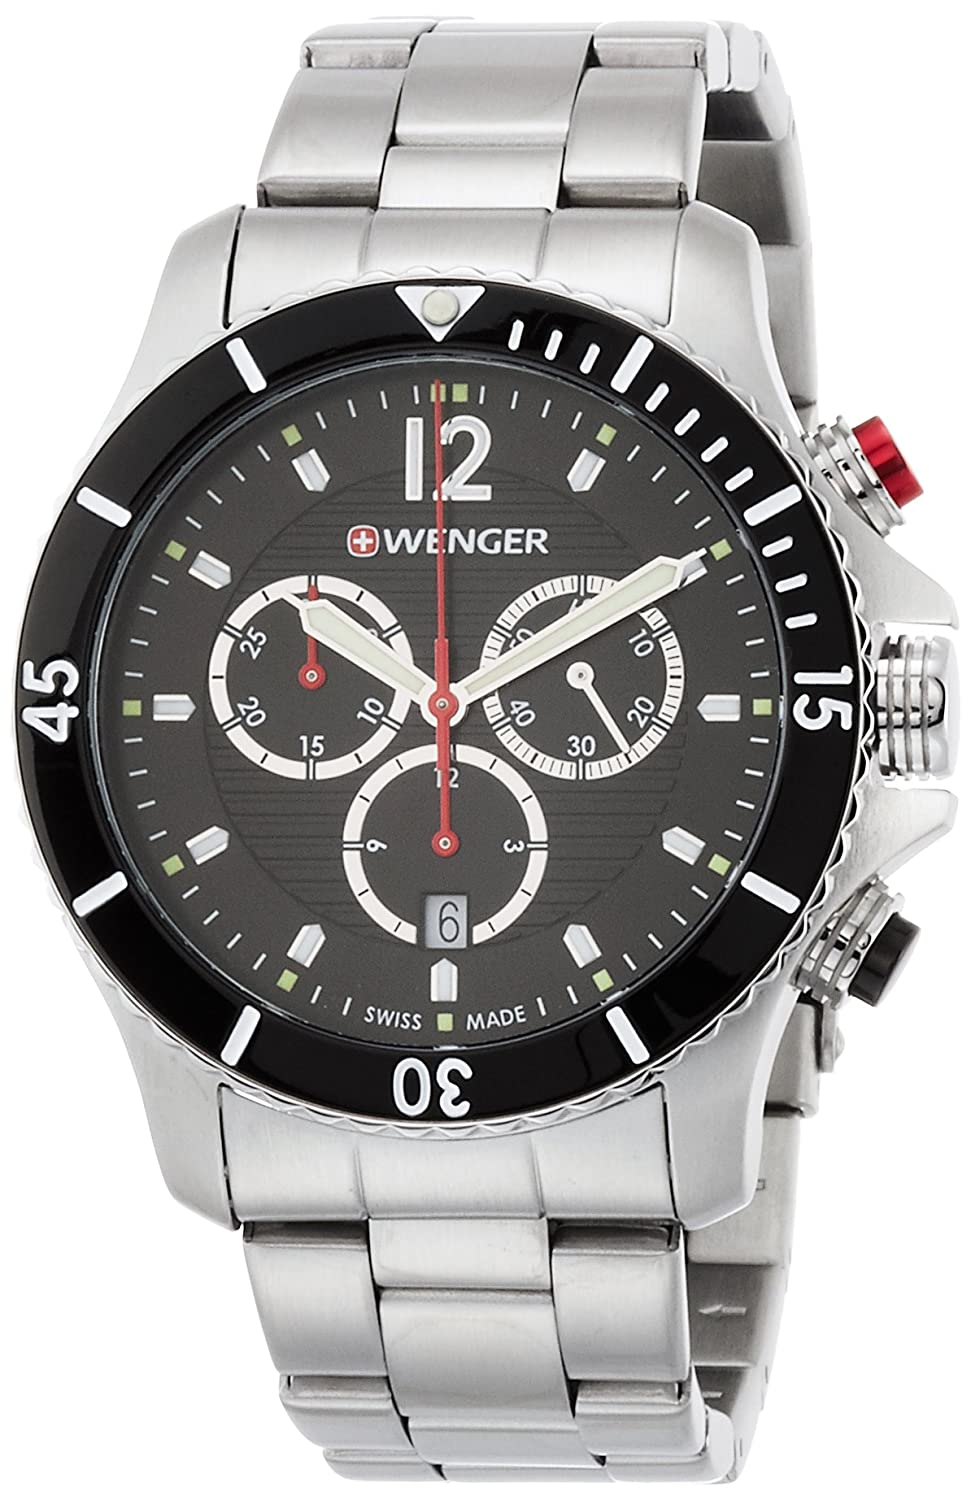 WEGNER Unisex-Armbanduhr 01.0643.109 WENGER SEAFORCE CHRONO Analog Quarz Edelstahl 01.0643.109 WENGER SEAFORCE CHRONO